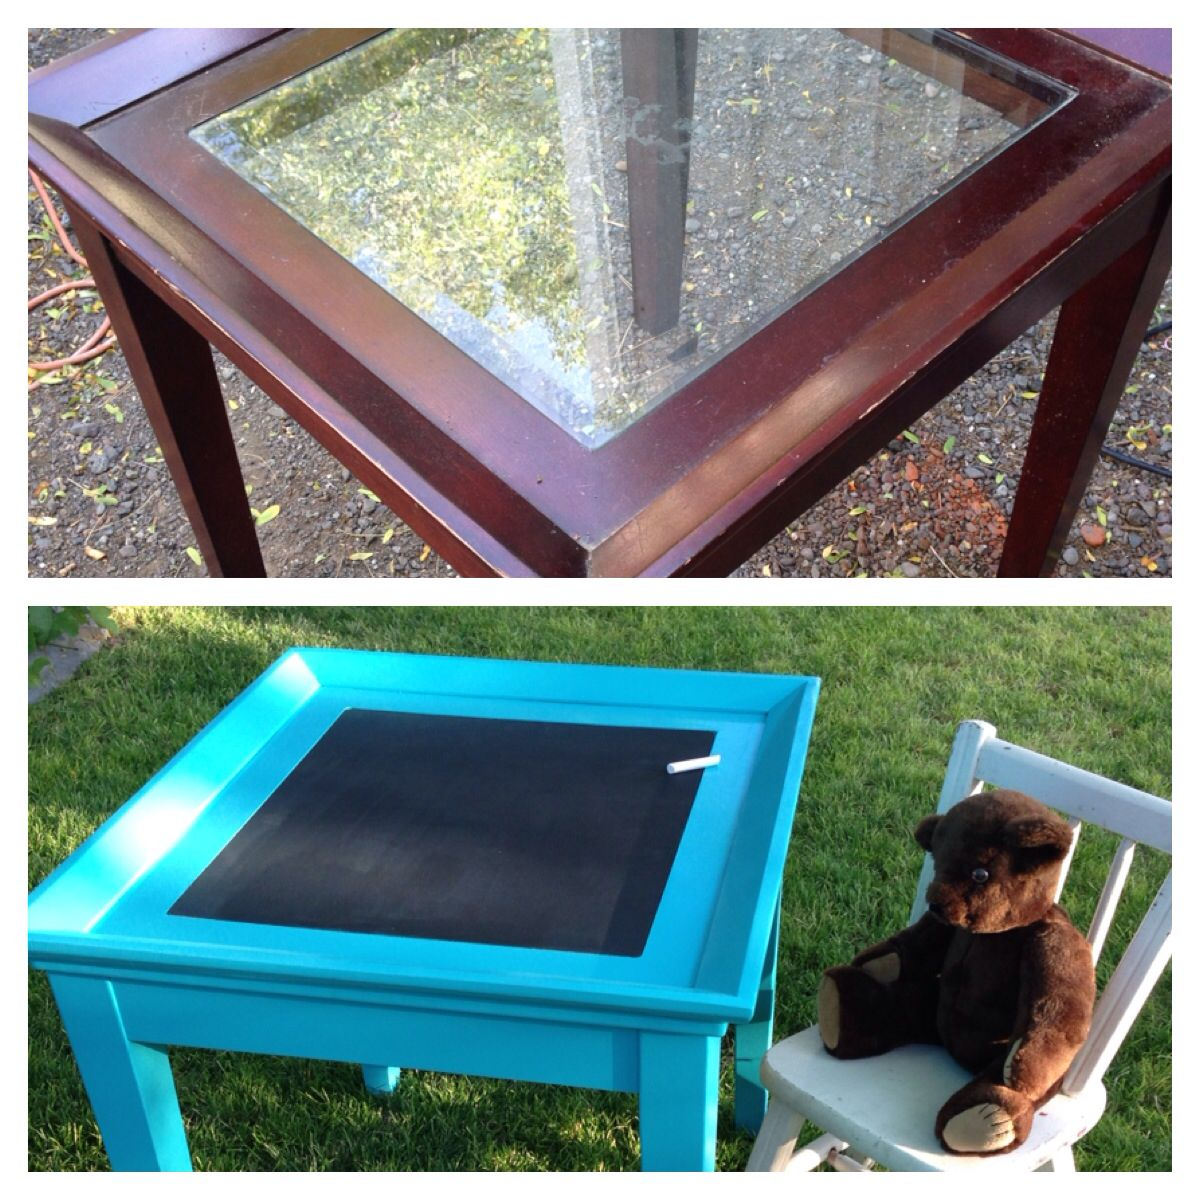 Repurposed End Table With Broken Glass Insert Turned Into A Chalkboard Child S Table Replaced Glass With 1 8 Inch Piec Kid Table Diy Coffee Table Diy Table